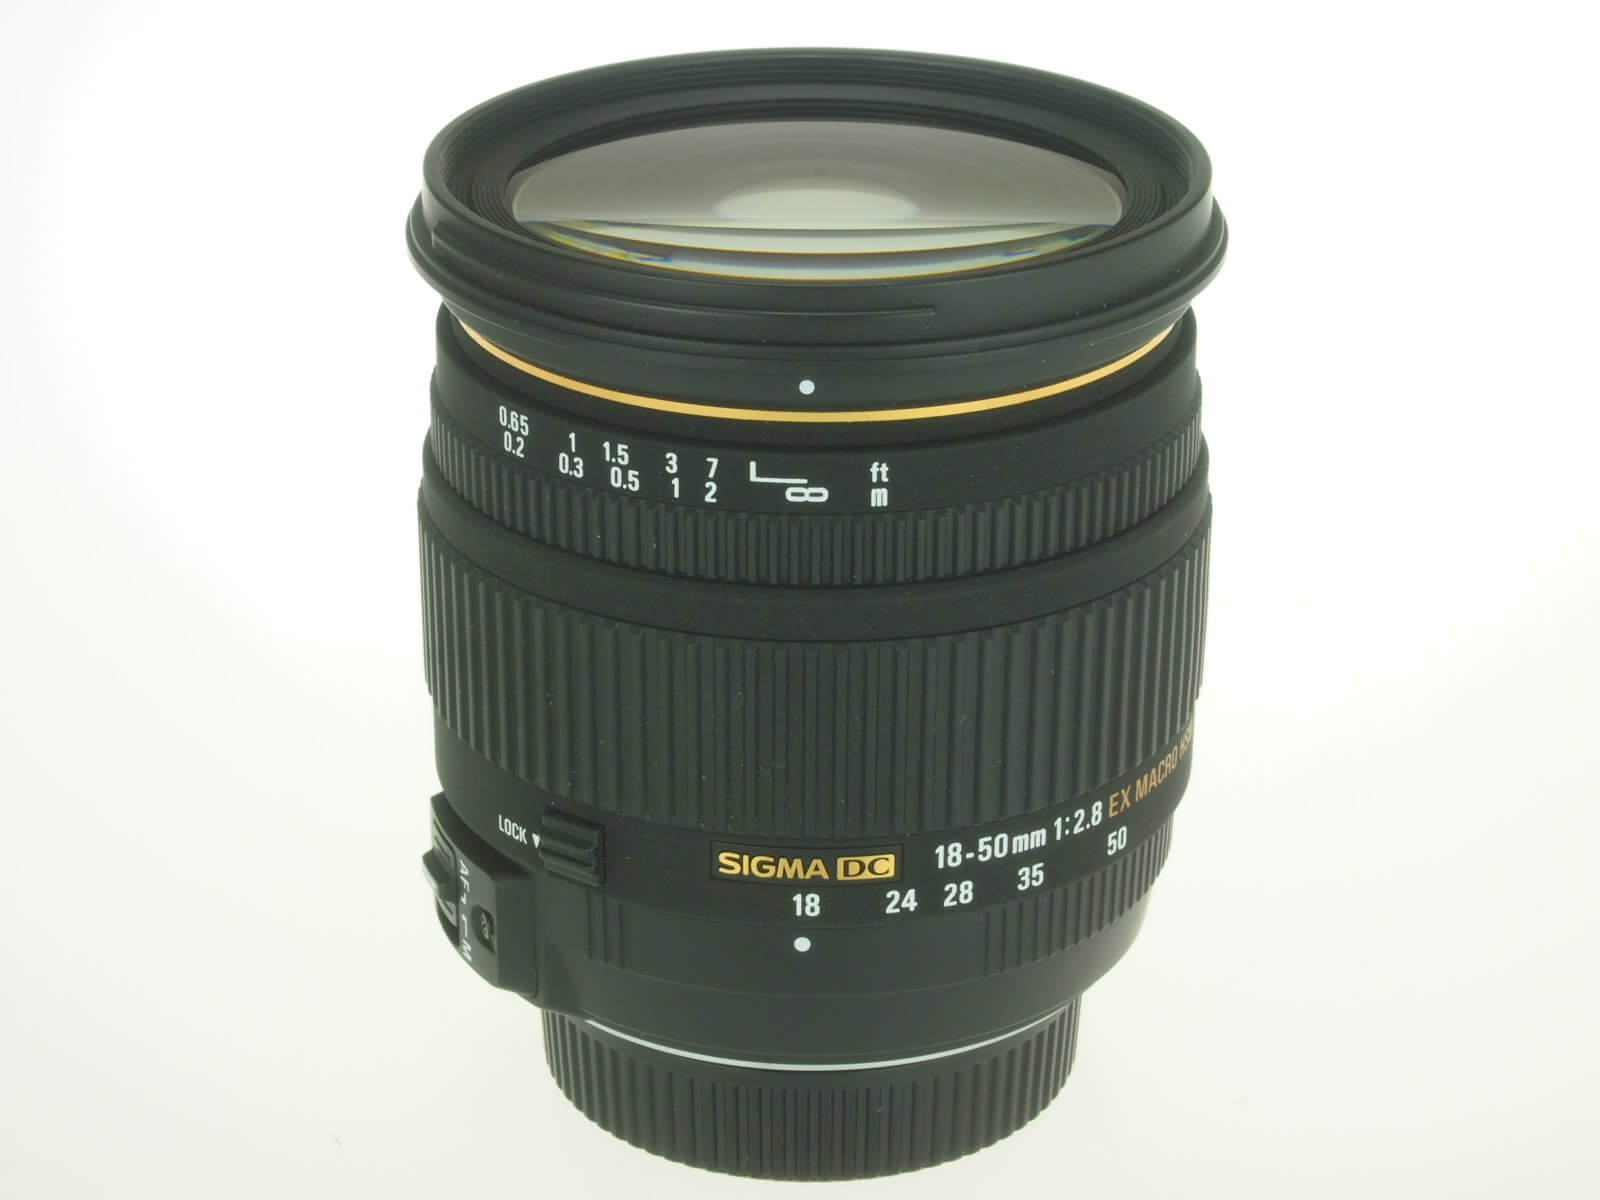 Sigma 18-50mm f2.8 DC EX lens, Nikon mount, mint condition!